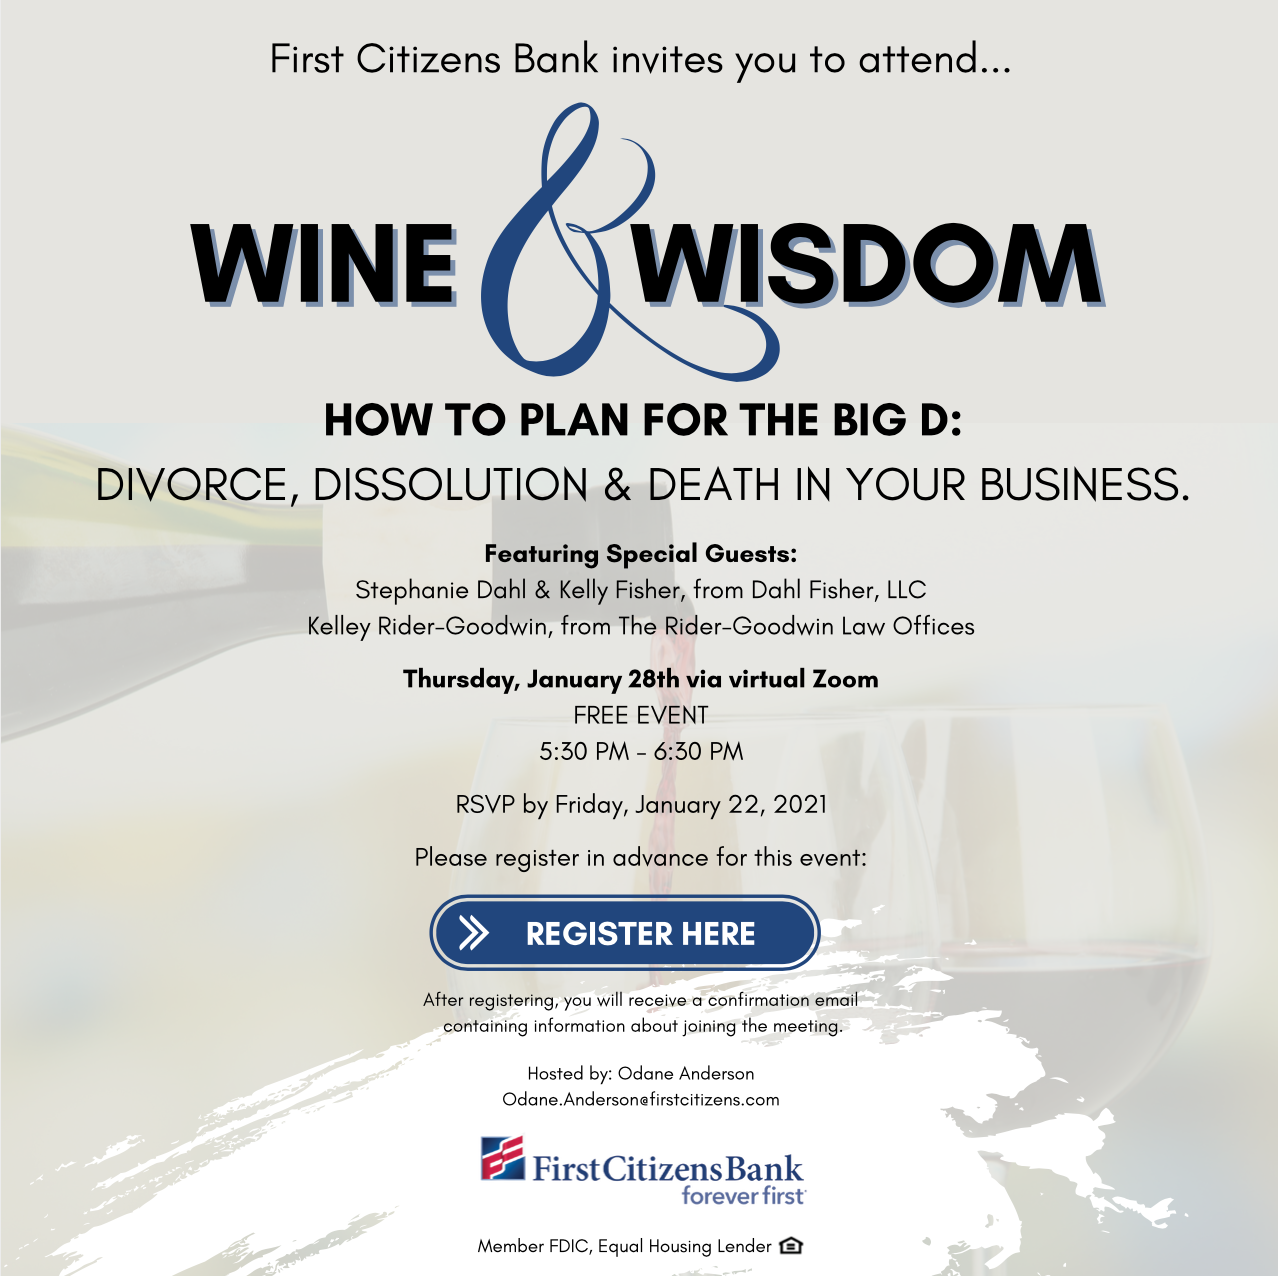 First Citizens Bank invites you to attend Wine & Wisdom on January 28th.